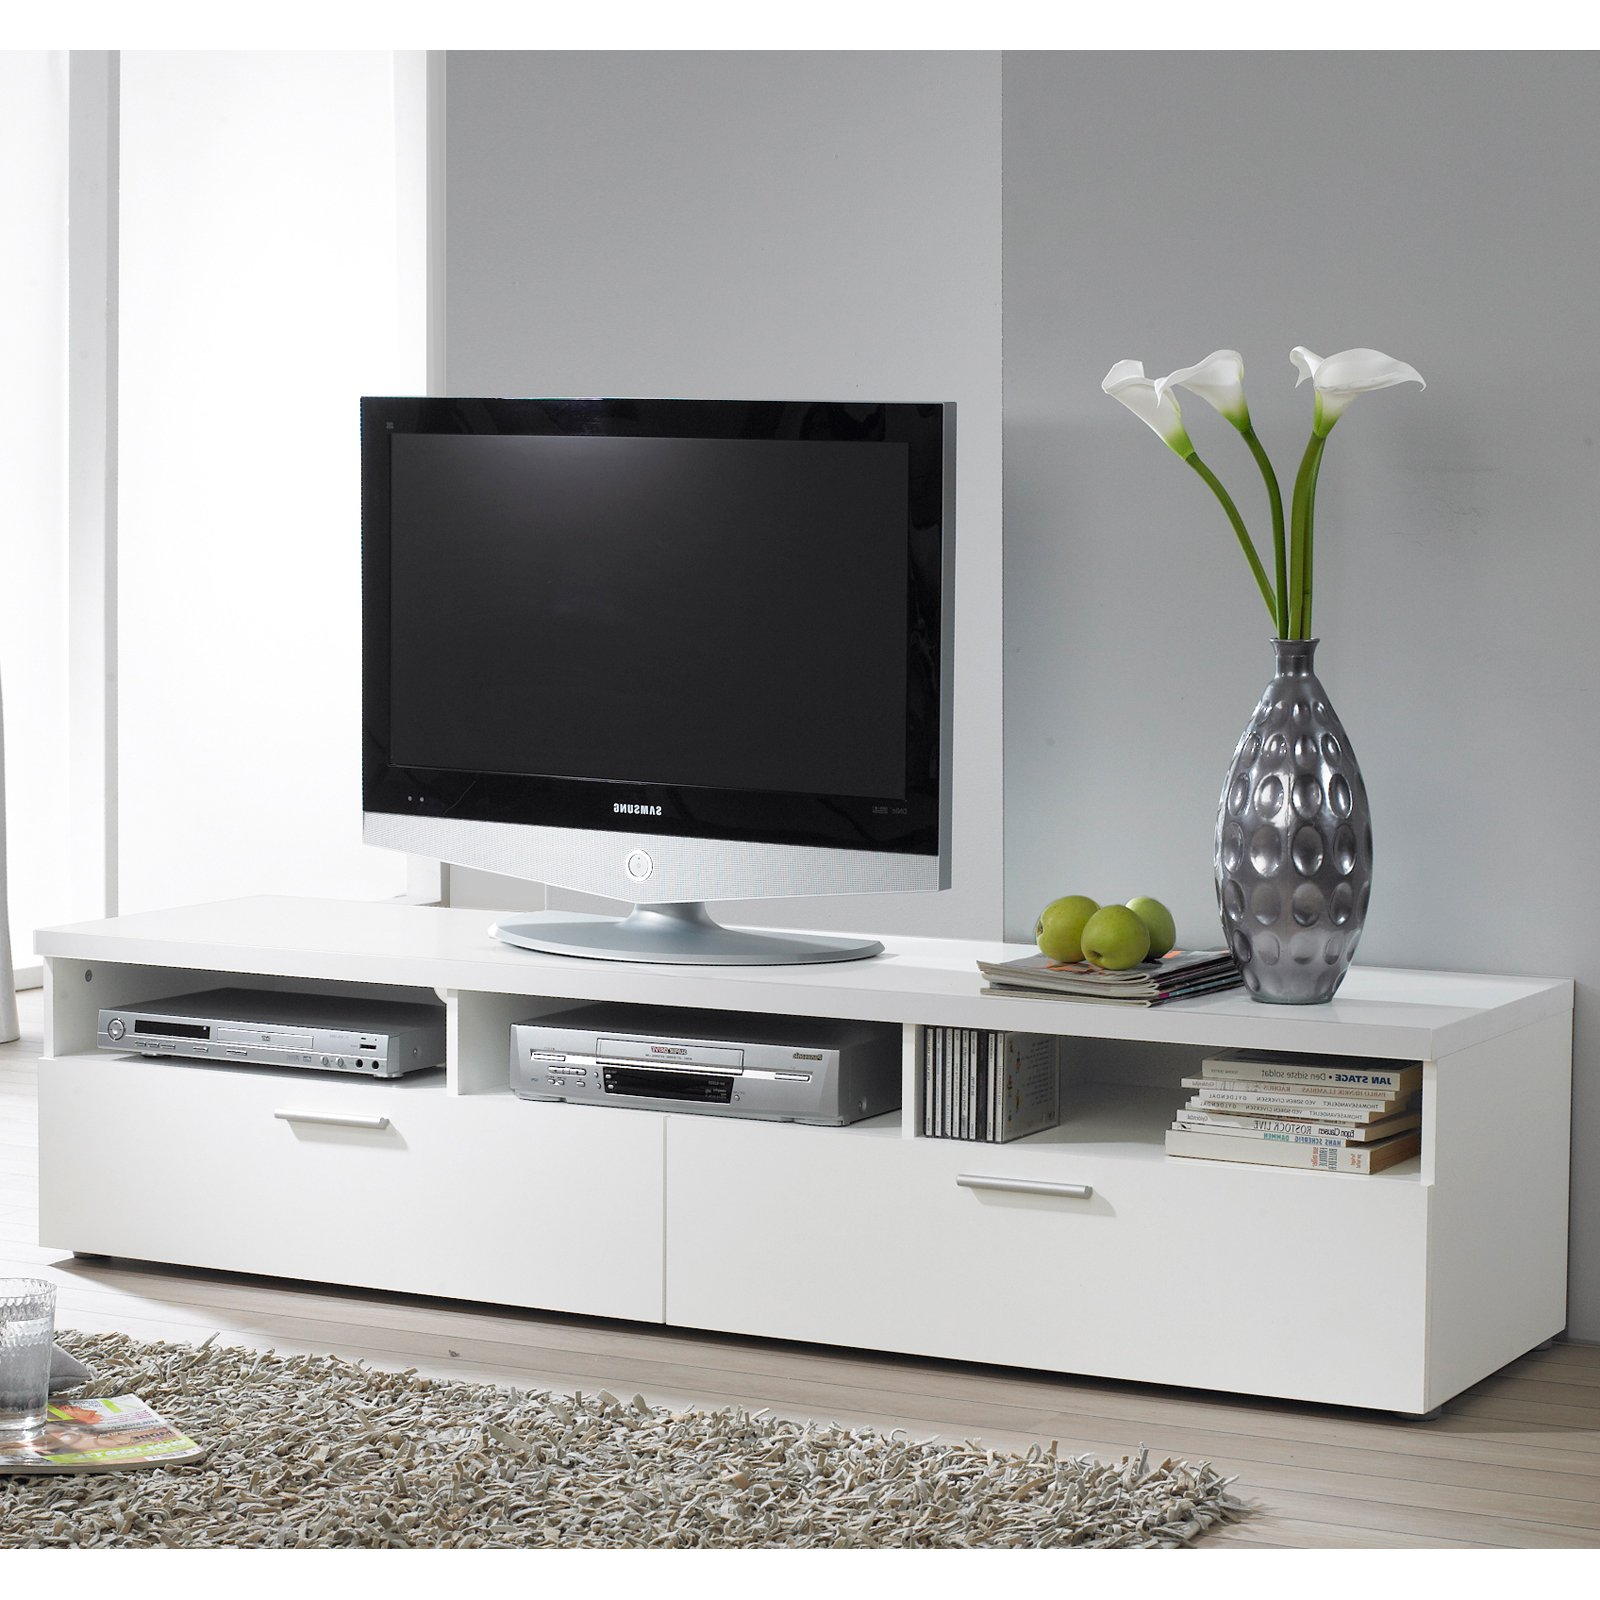 Recent Hayward Tv Stand – Walmart With Fancy Tv Stands (Gallery 8 of 20)